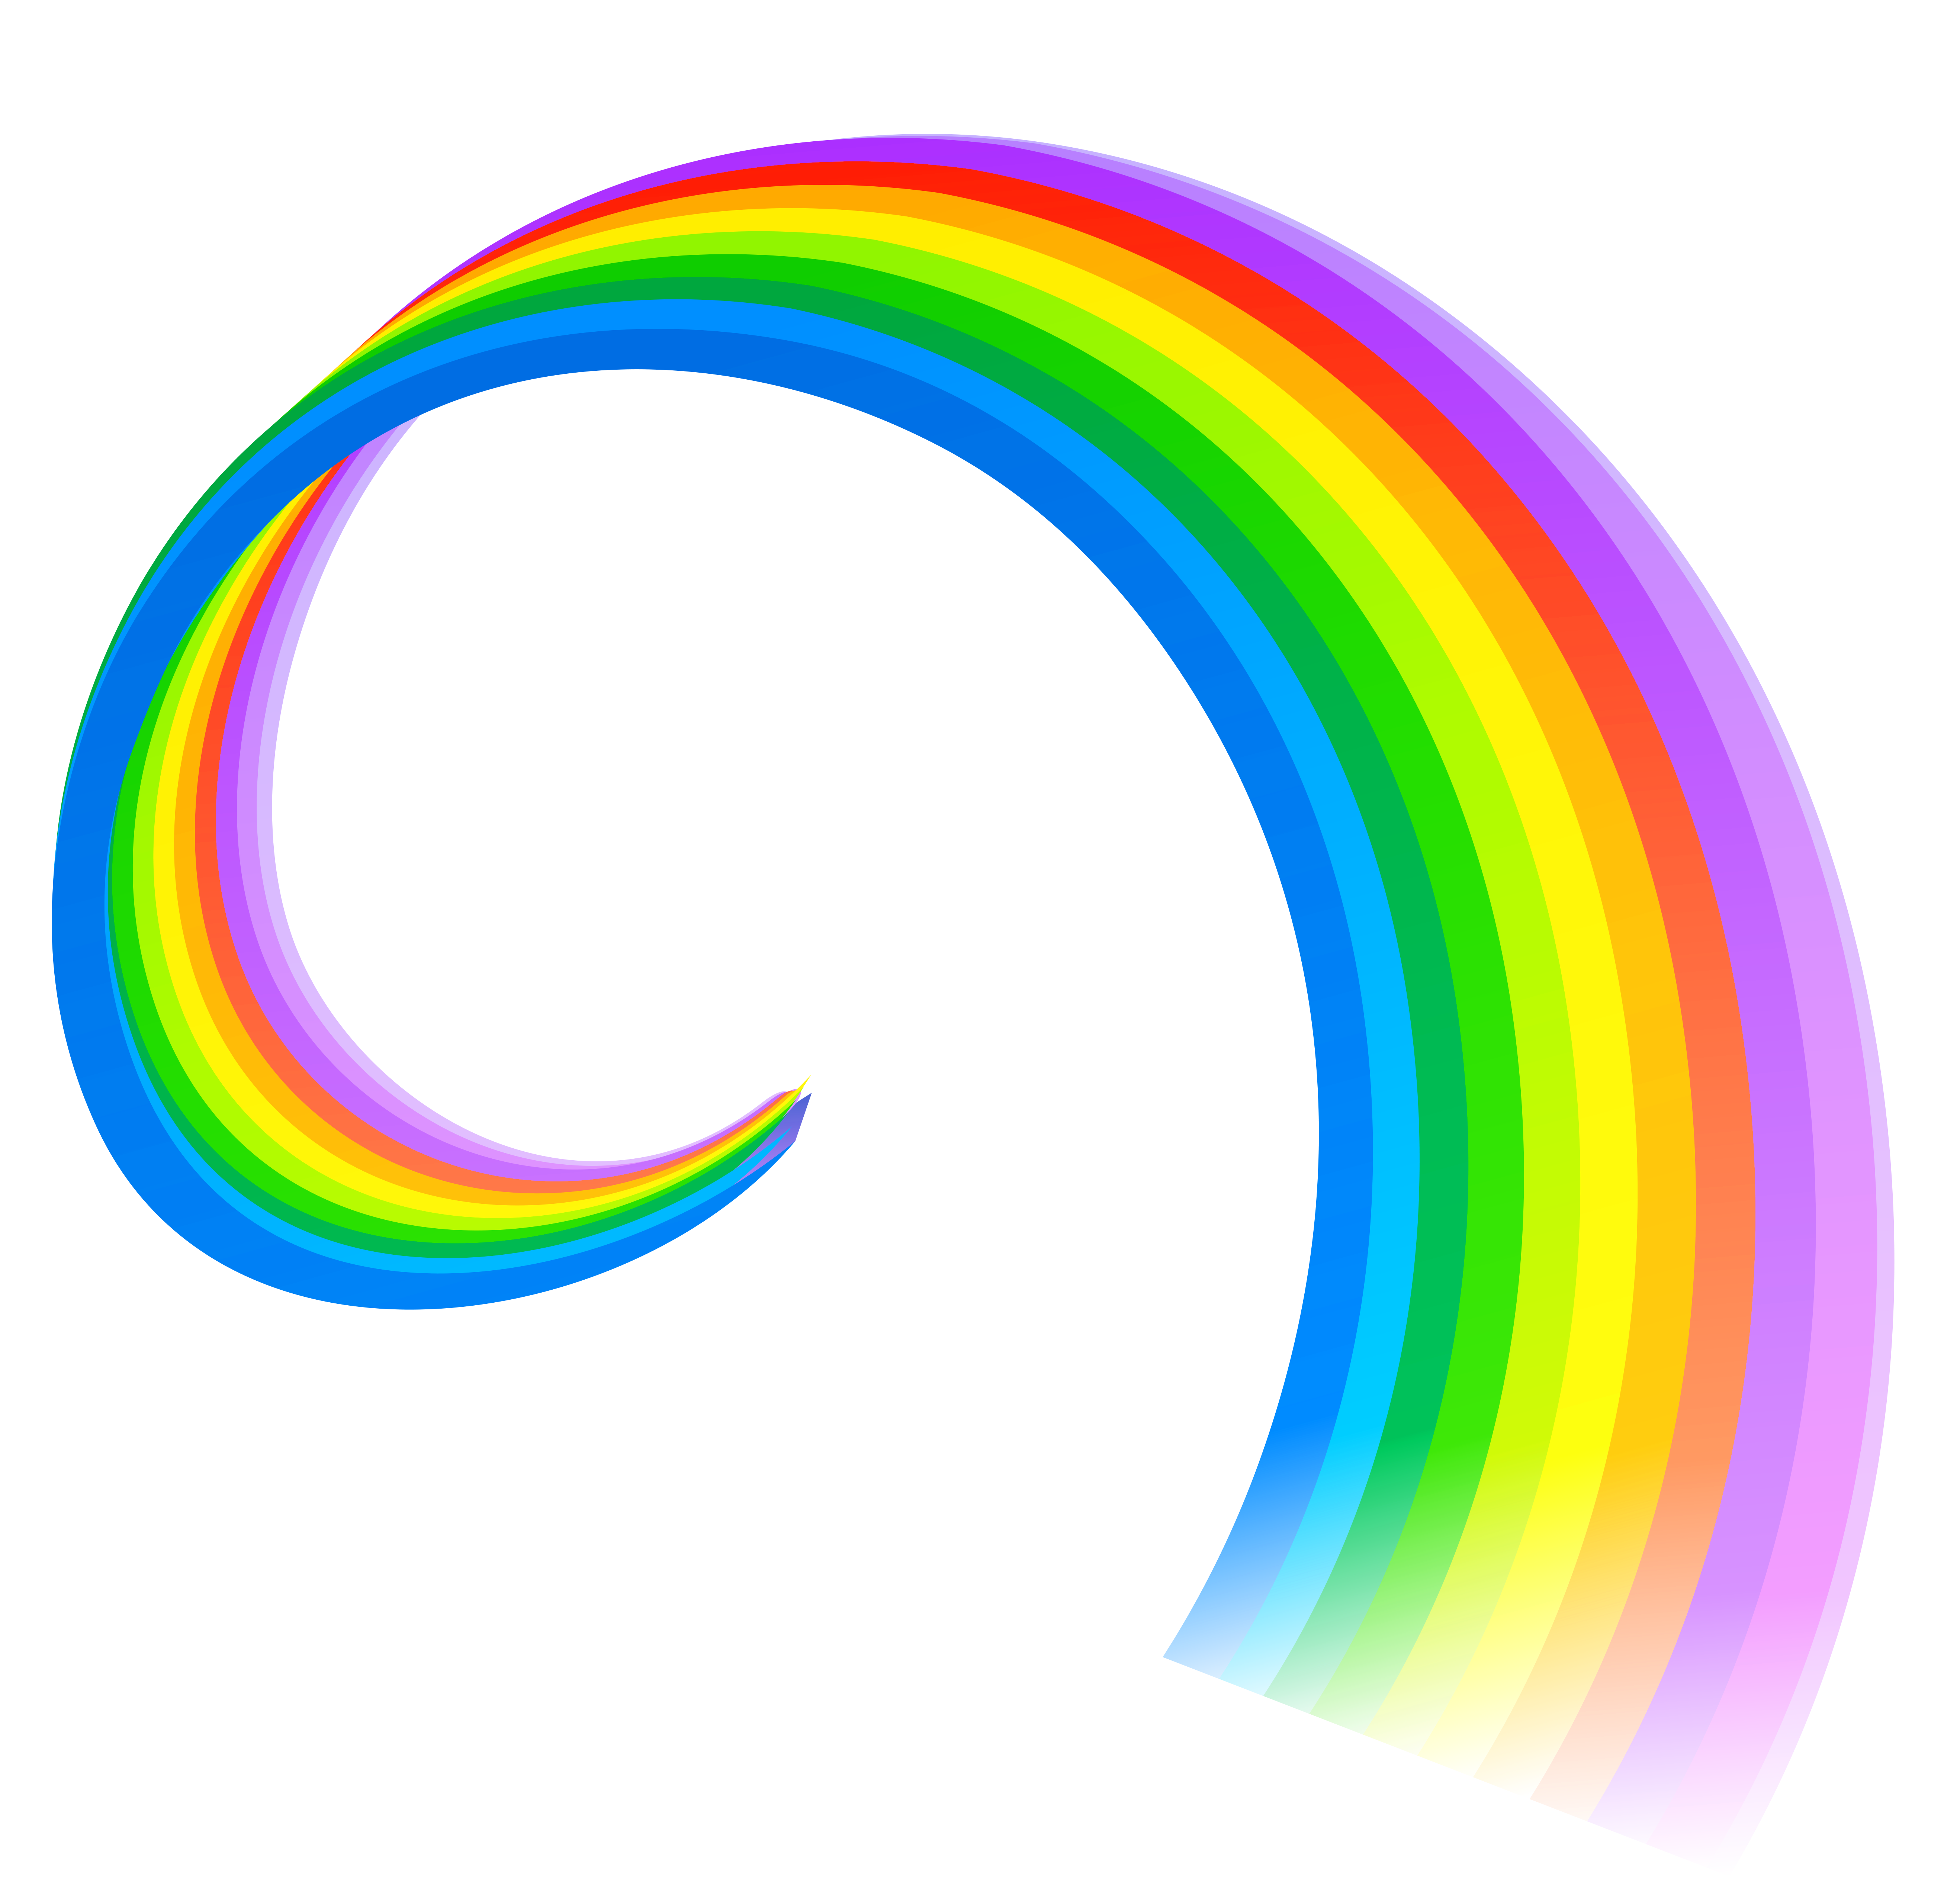 Images Of Rainbows - Cliparts.co